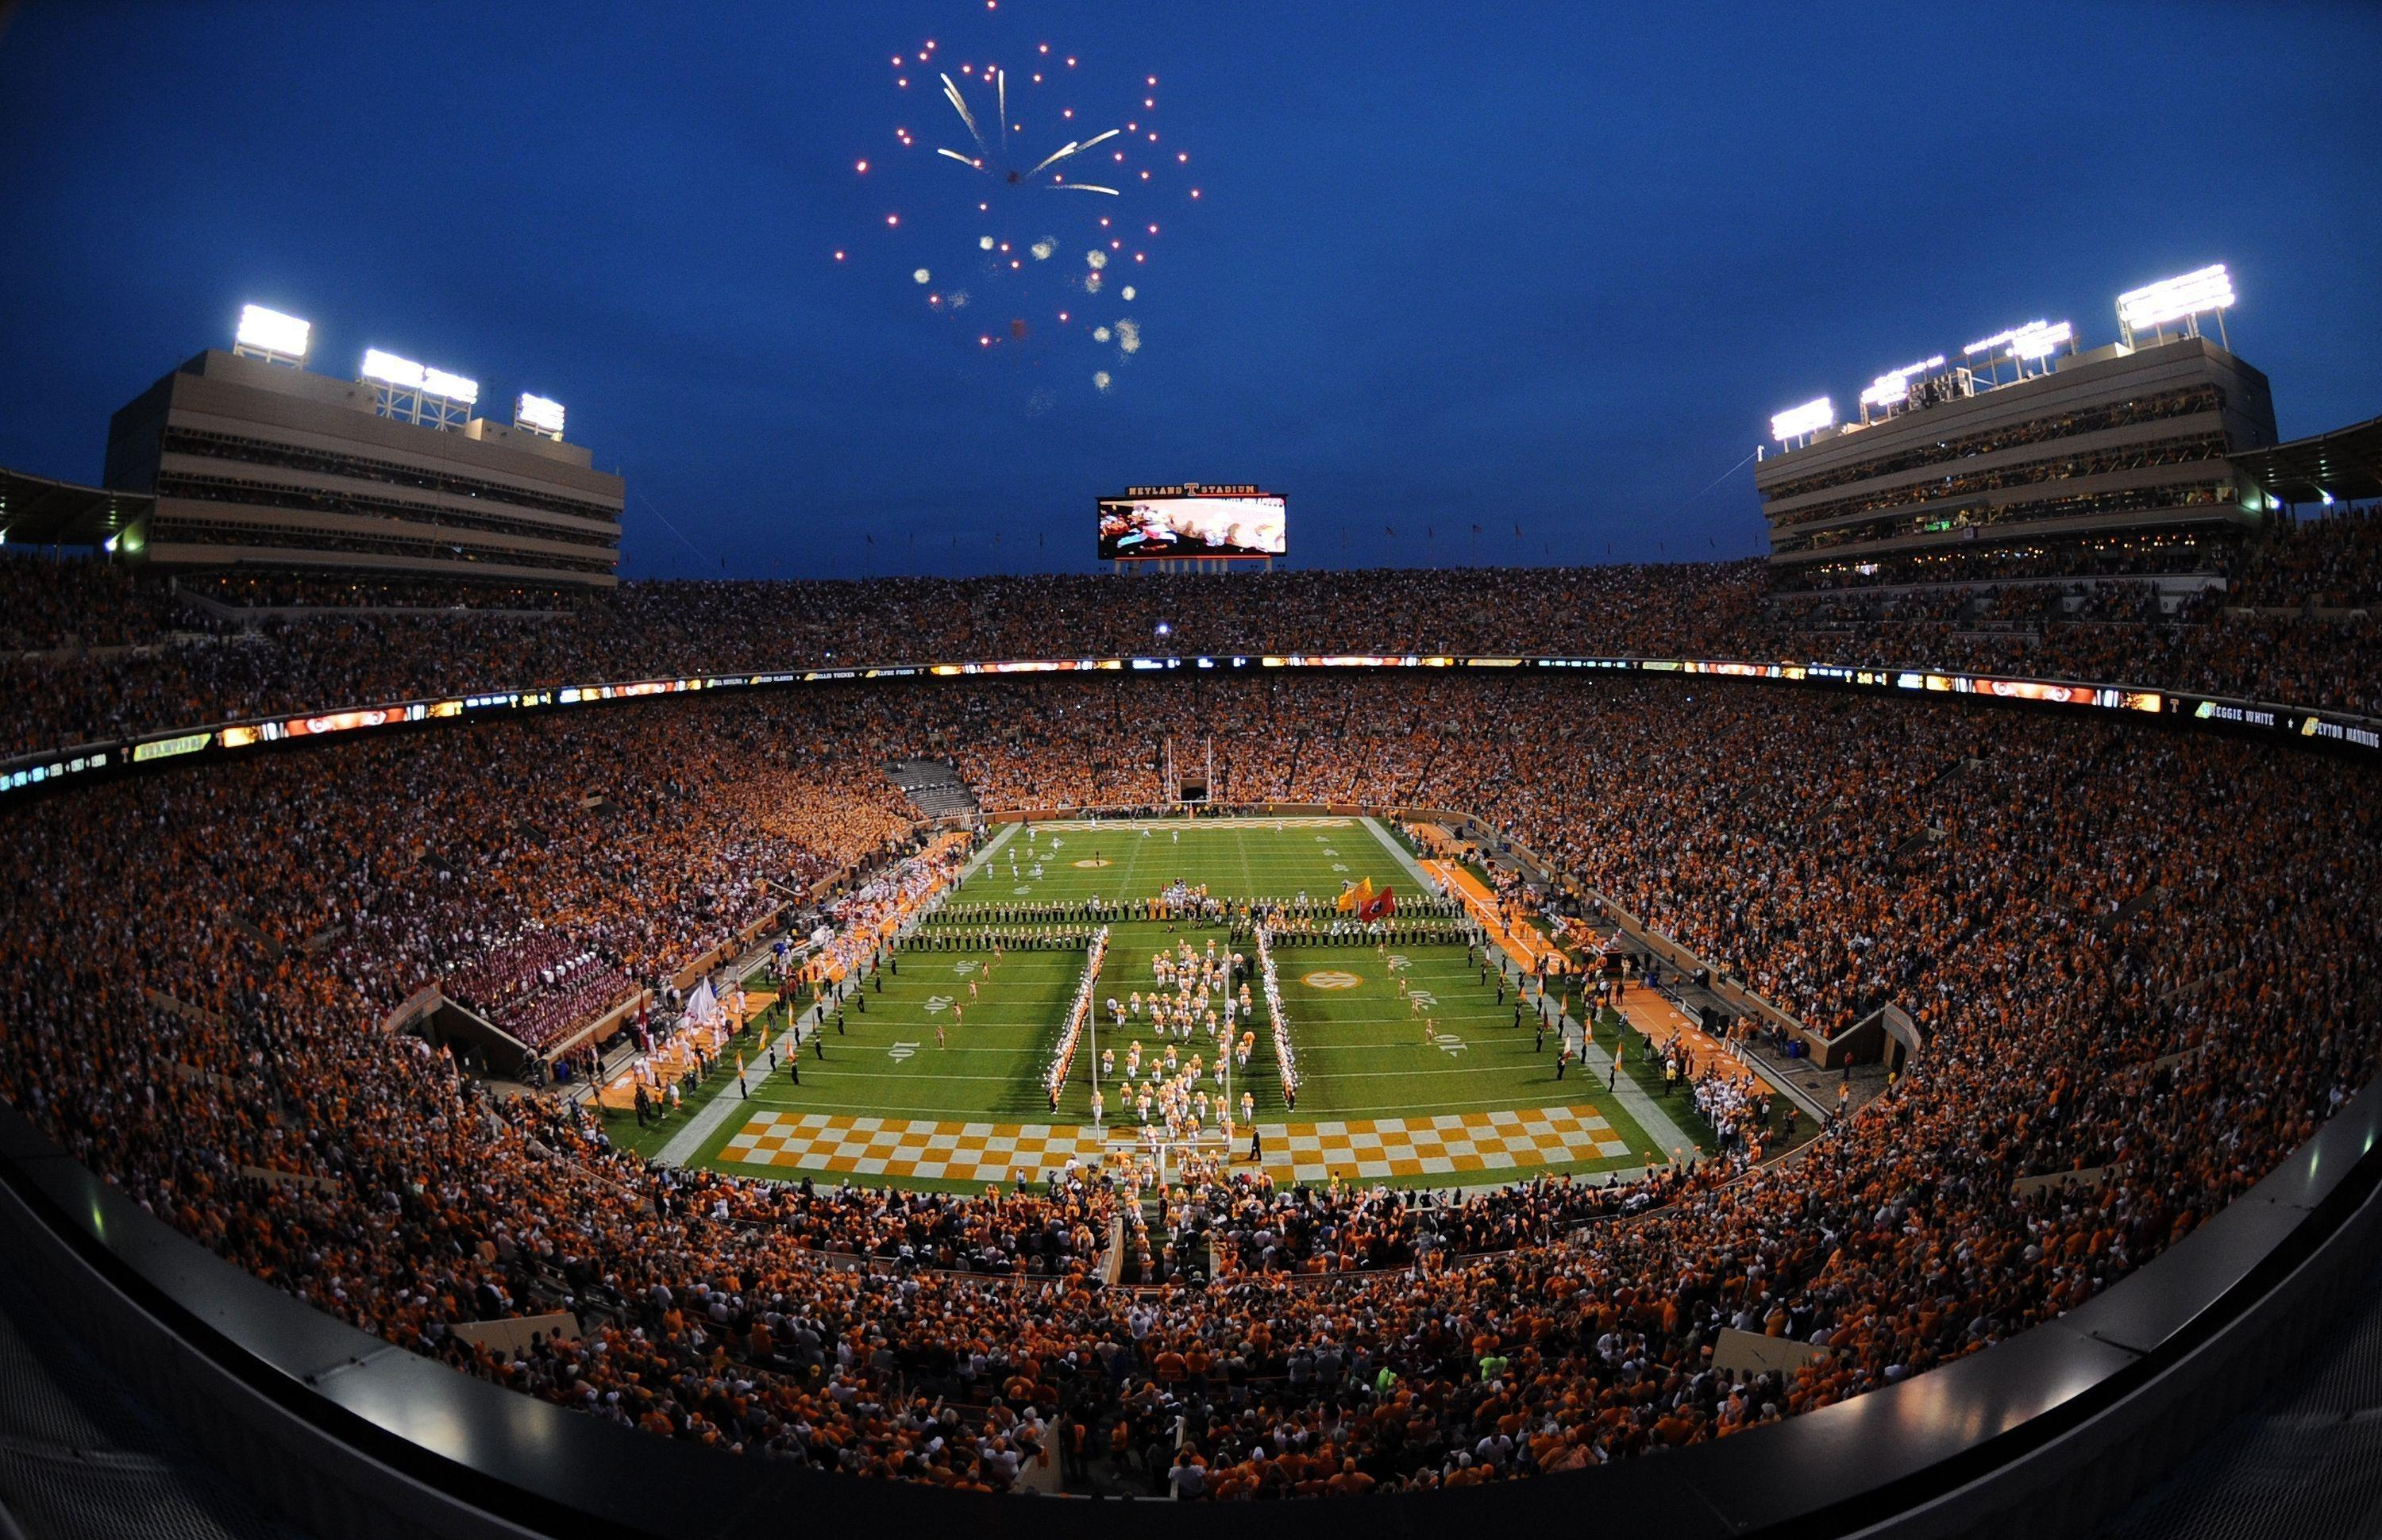 10 New Tennessee Vols Wallpapers For Android FULL HD 1080p For PC